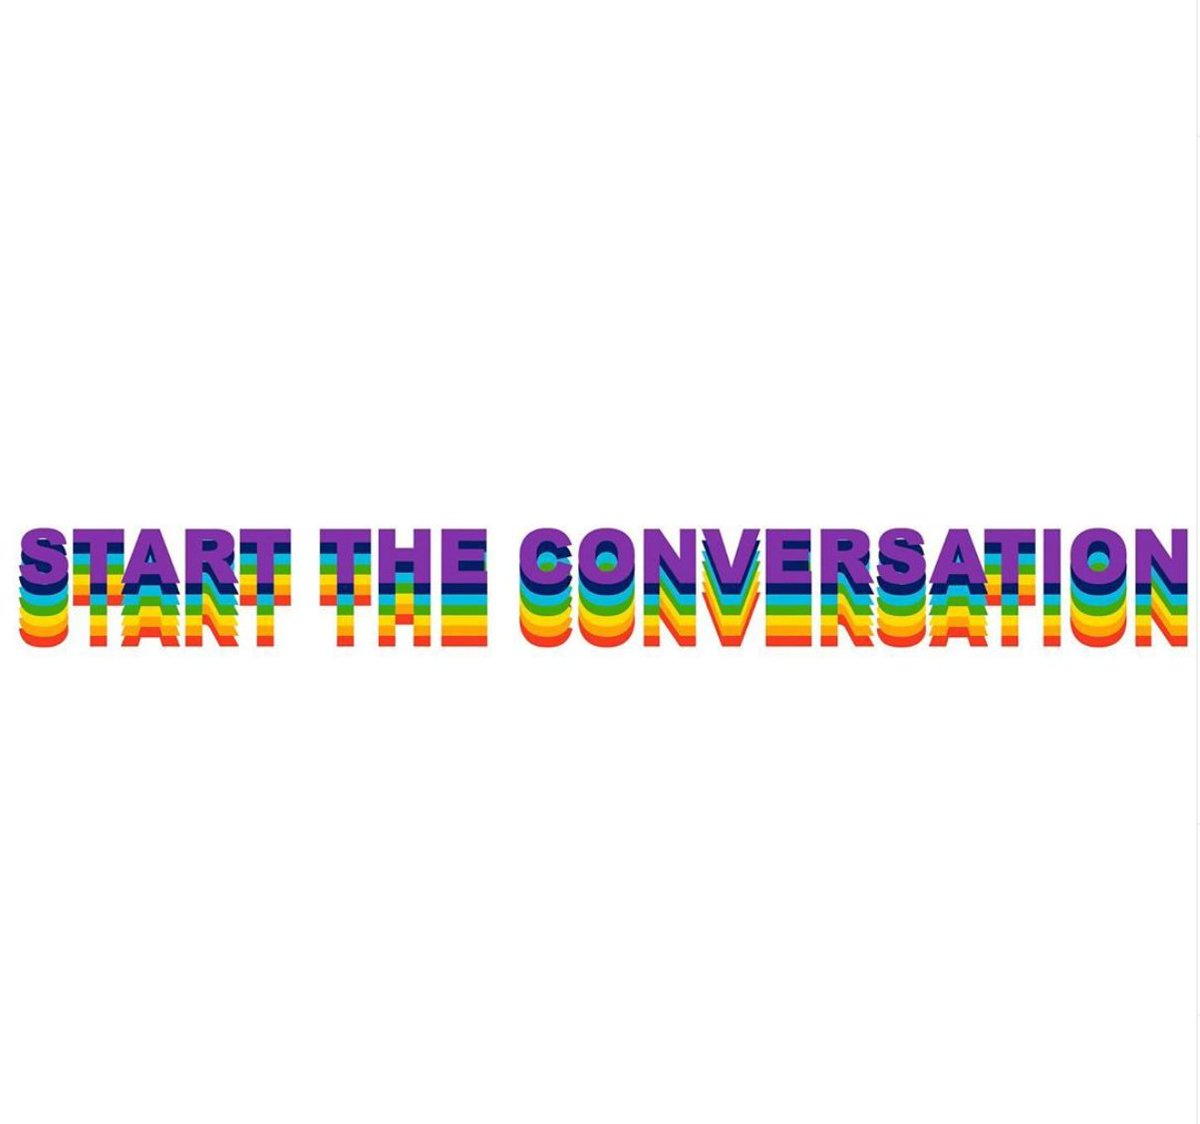 HAPPY PRIDE MONTH LOUISIANA! This month we celebrate out LGBTQ+ community and honor Pride. We want to #StartTheConversation and know what makes your prideful? pic.twitter.com/BcBvuwThQN